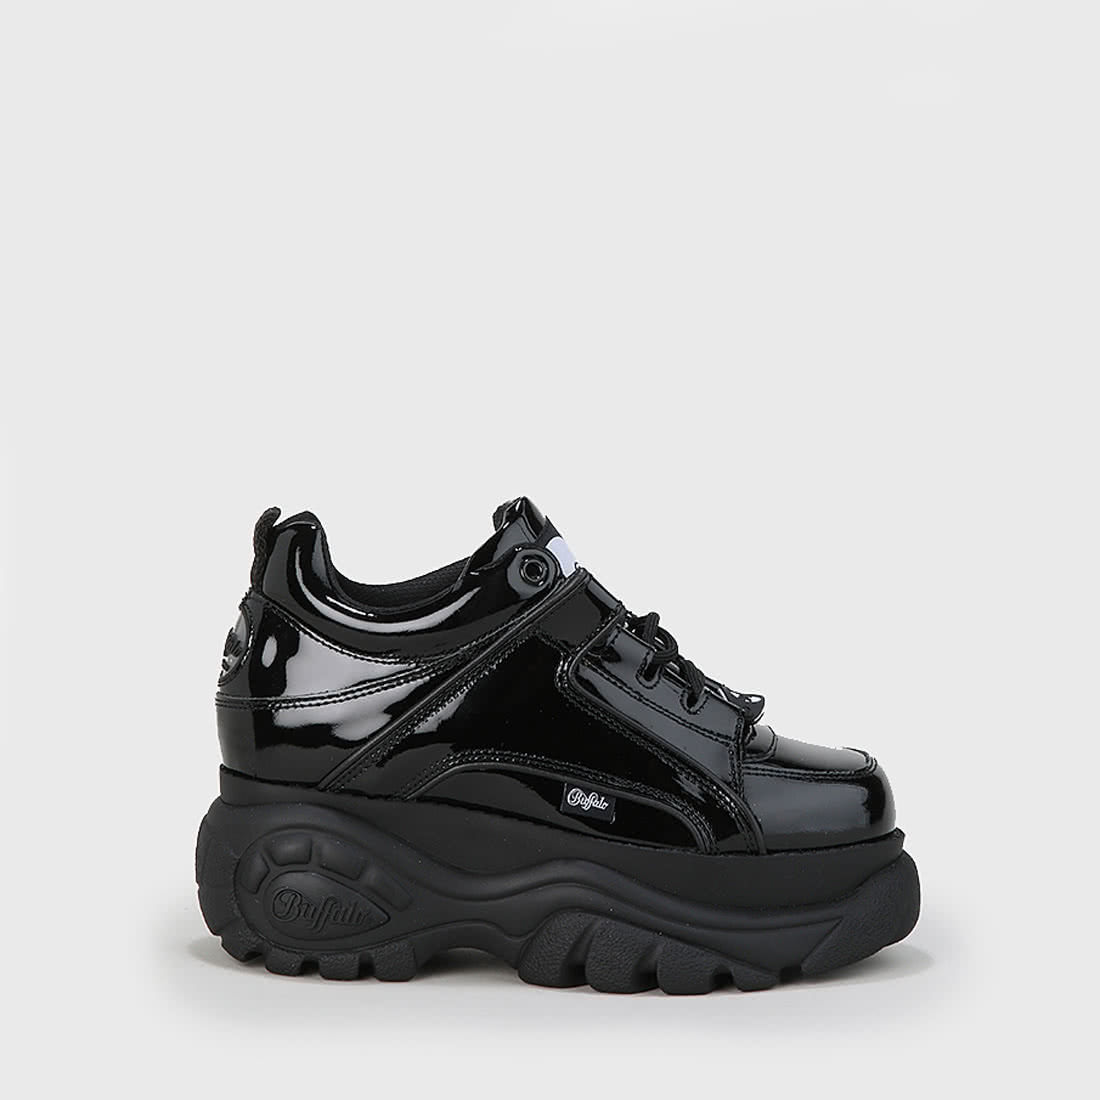 popular stores reasonably priced coupon code Classic Kick patent leather black buy online in BUFFALO Online ...